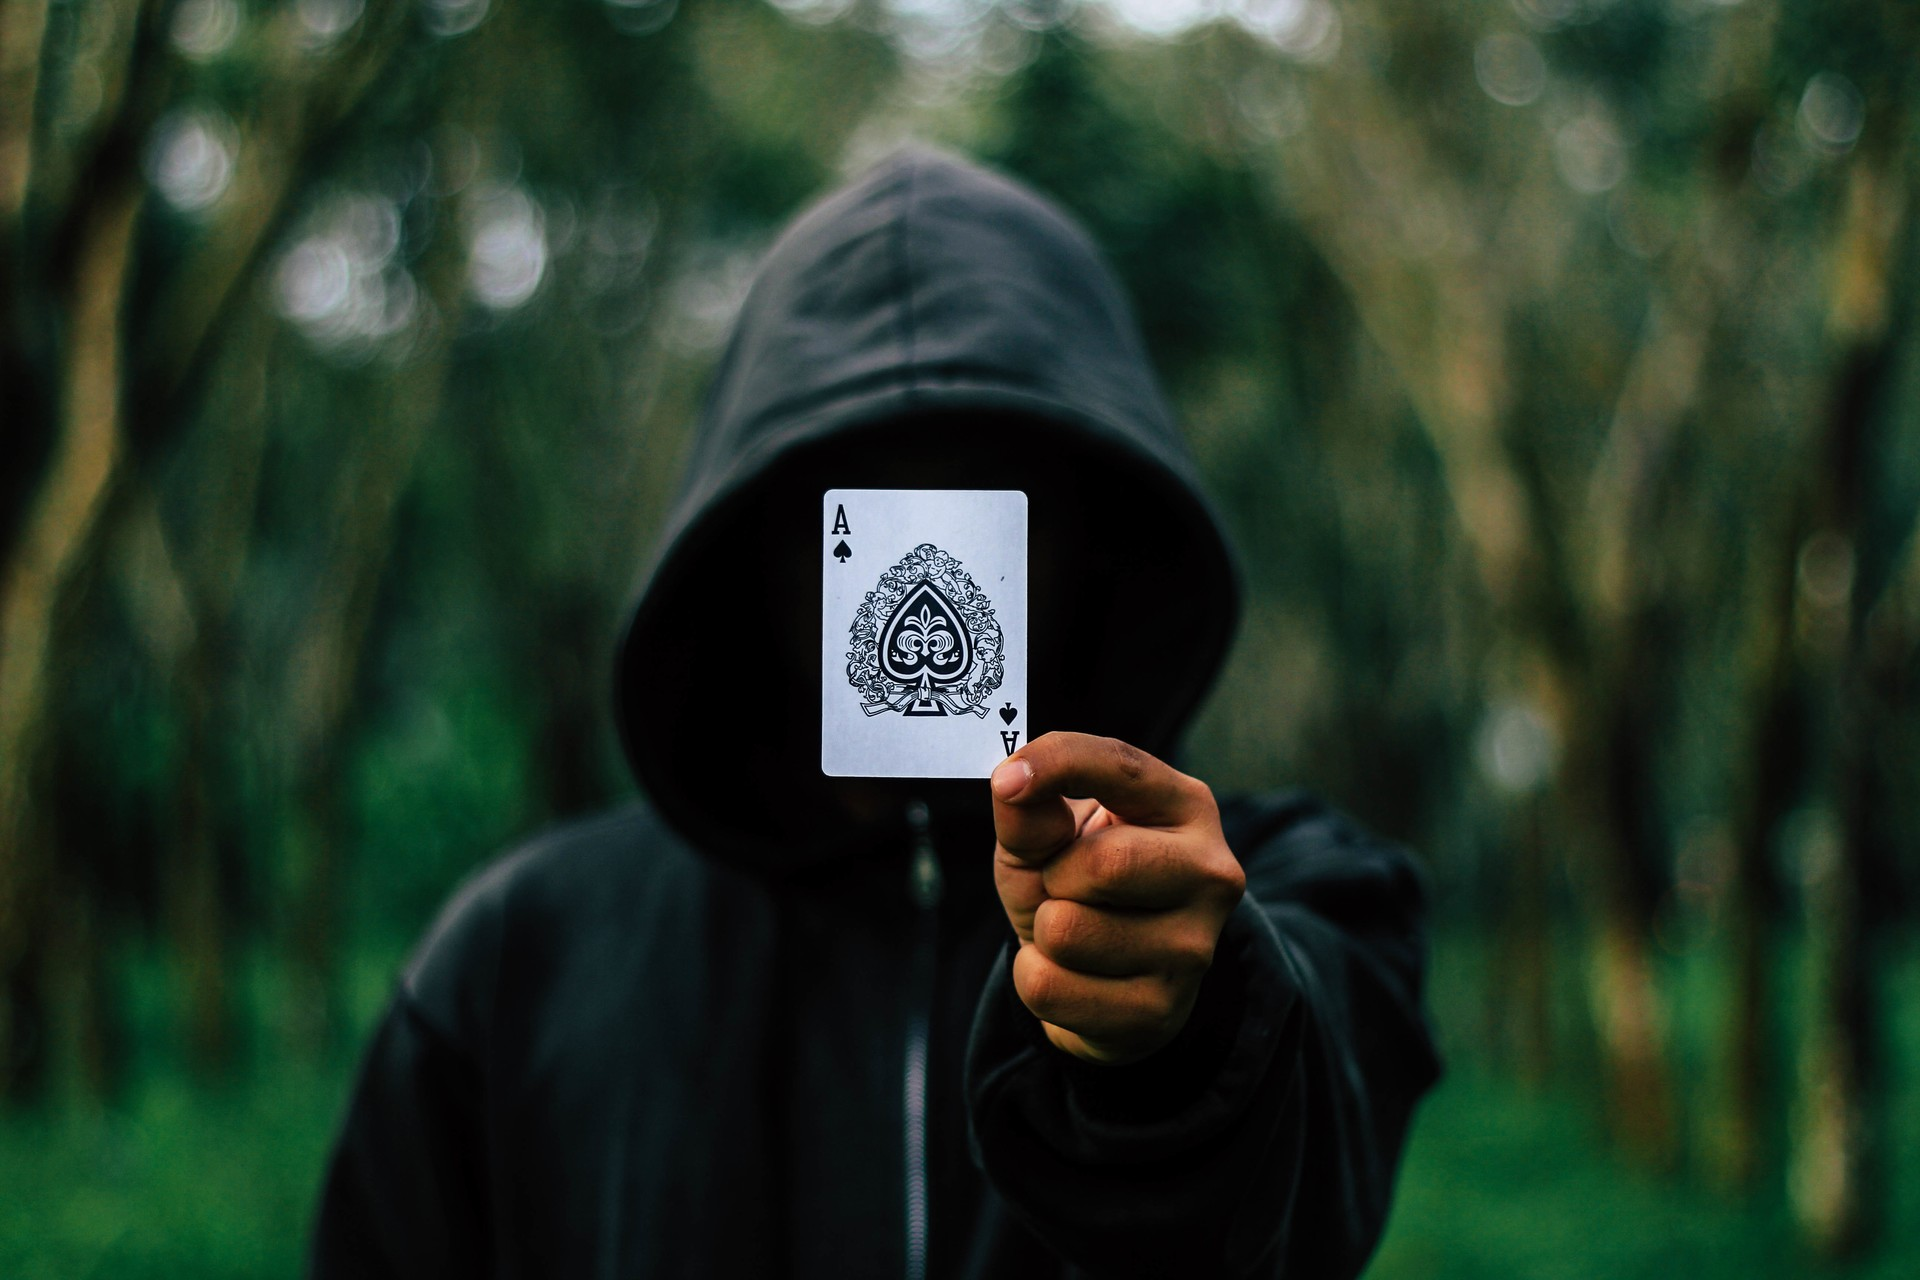 5 Simple Card Tricks to Impress Your Friends